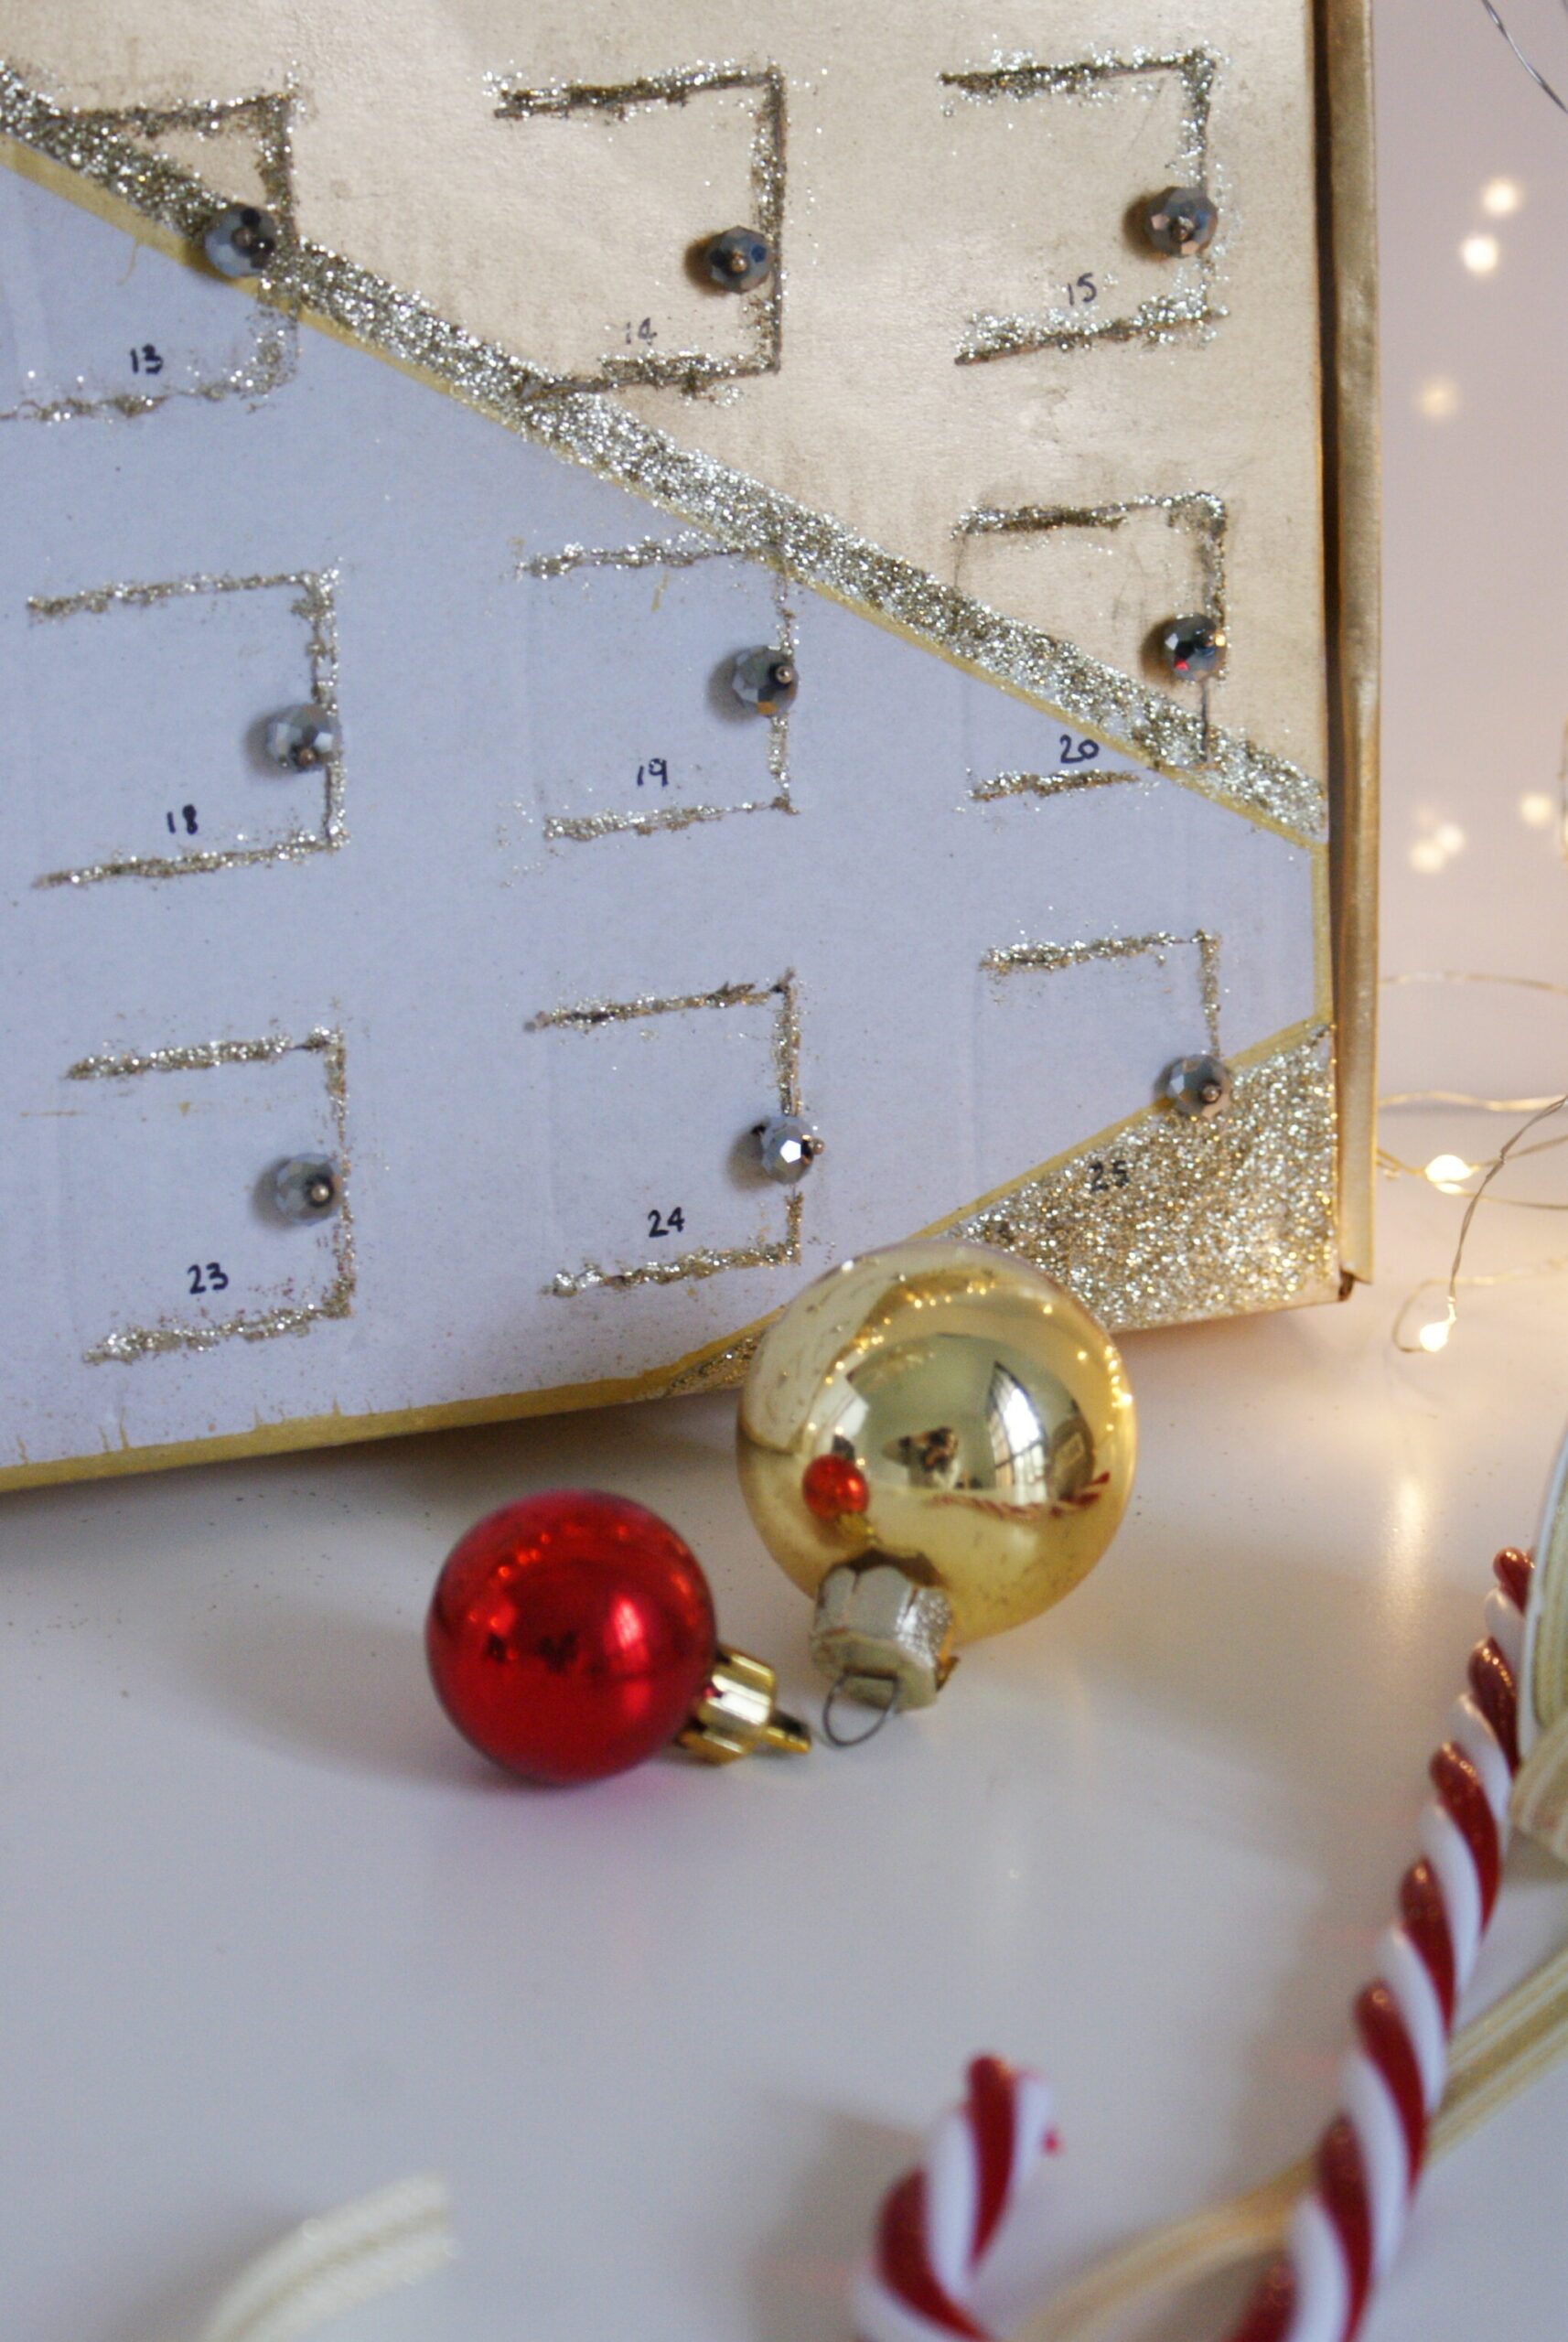 diy advent calendar christmas chocolate box genius reusable last minute idea